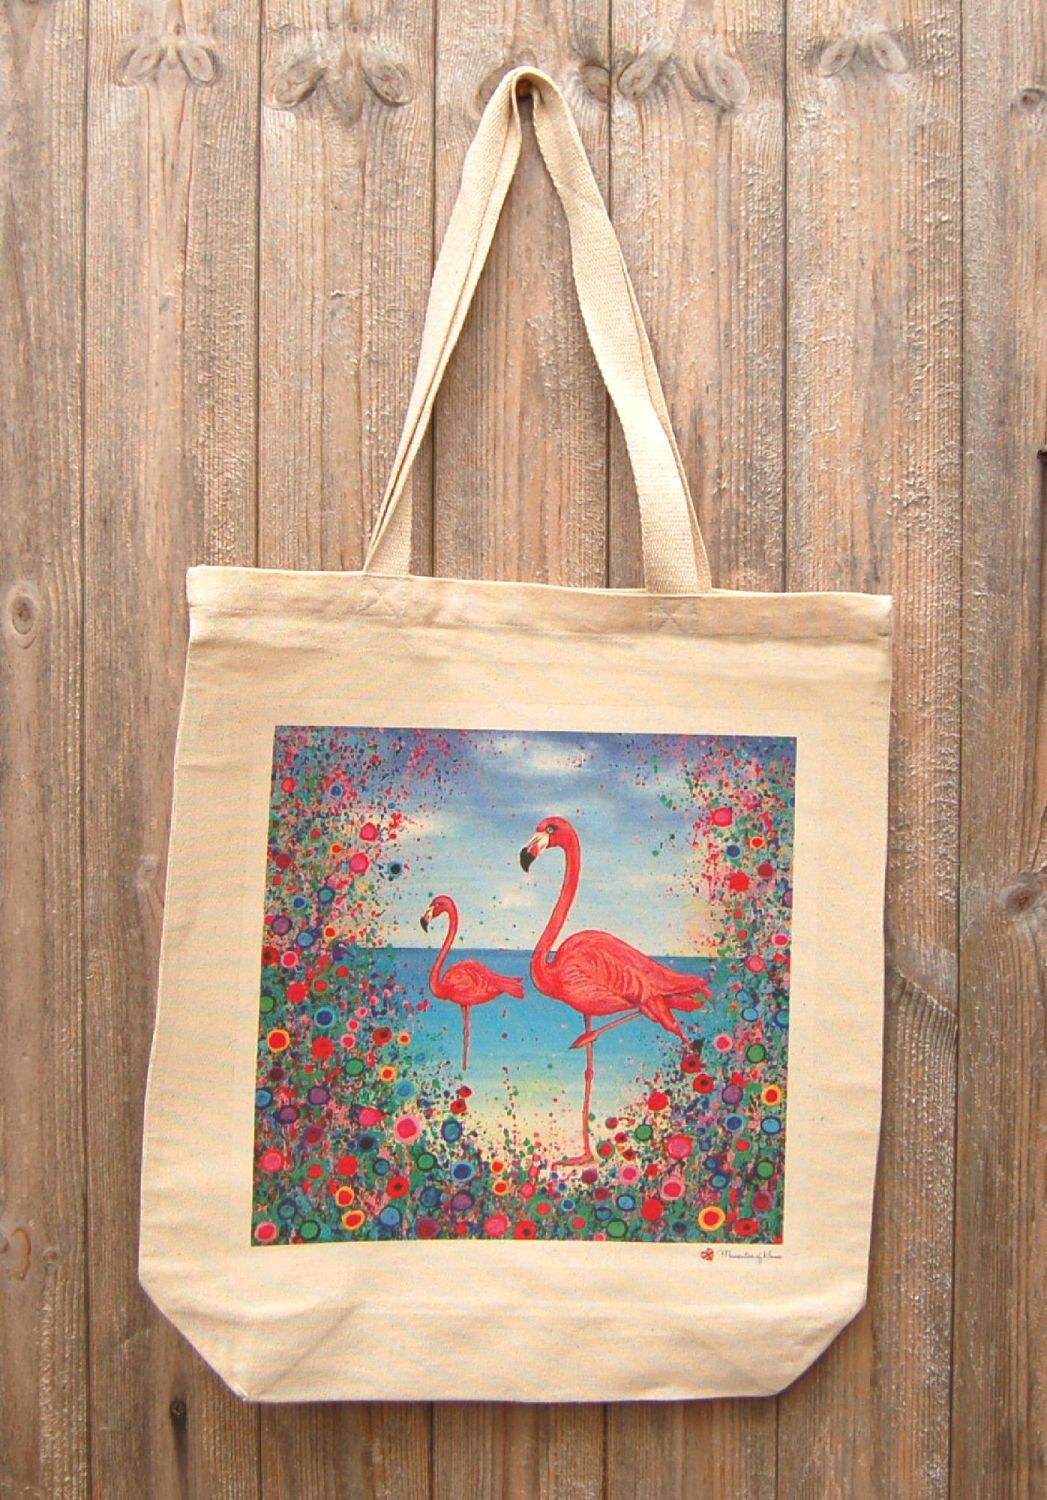 Jo Gough - Flamingo with flowers Tote Bag